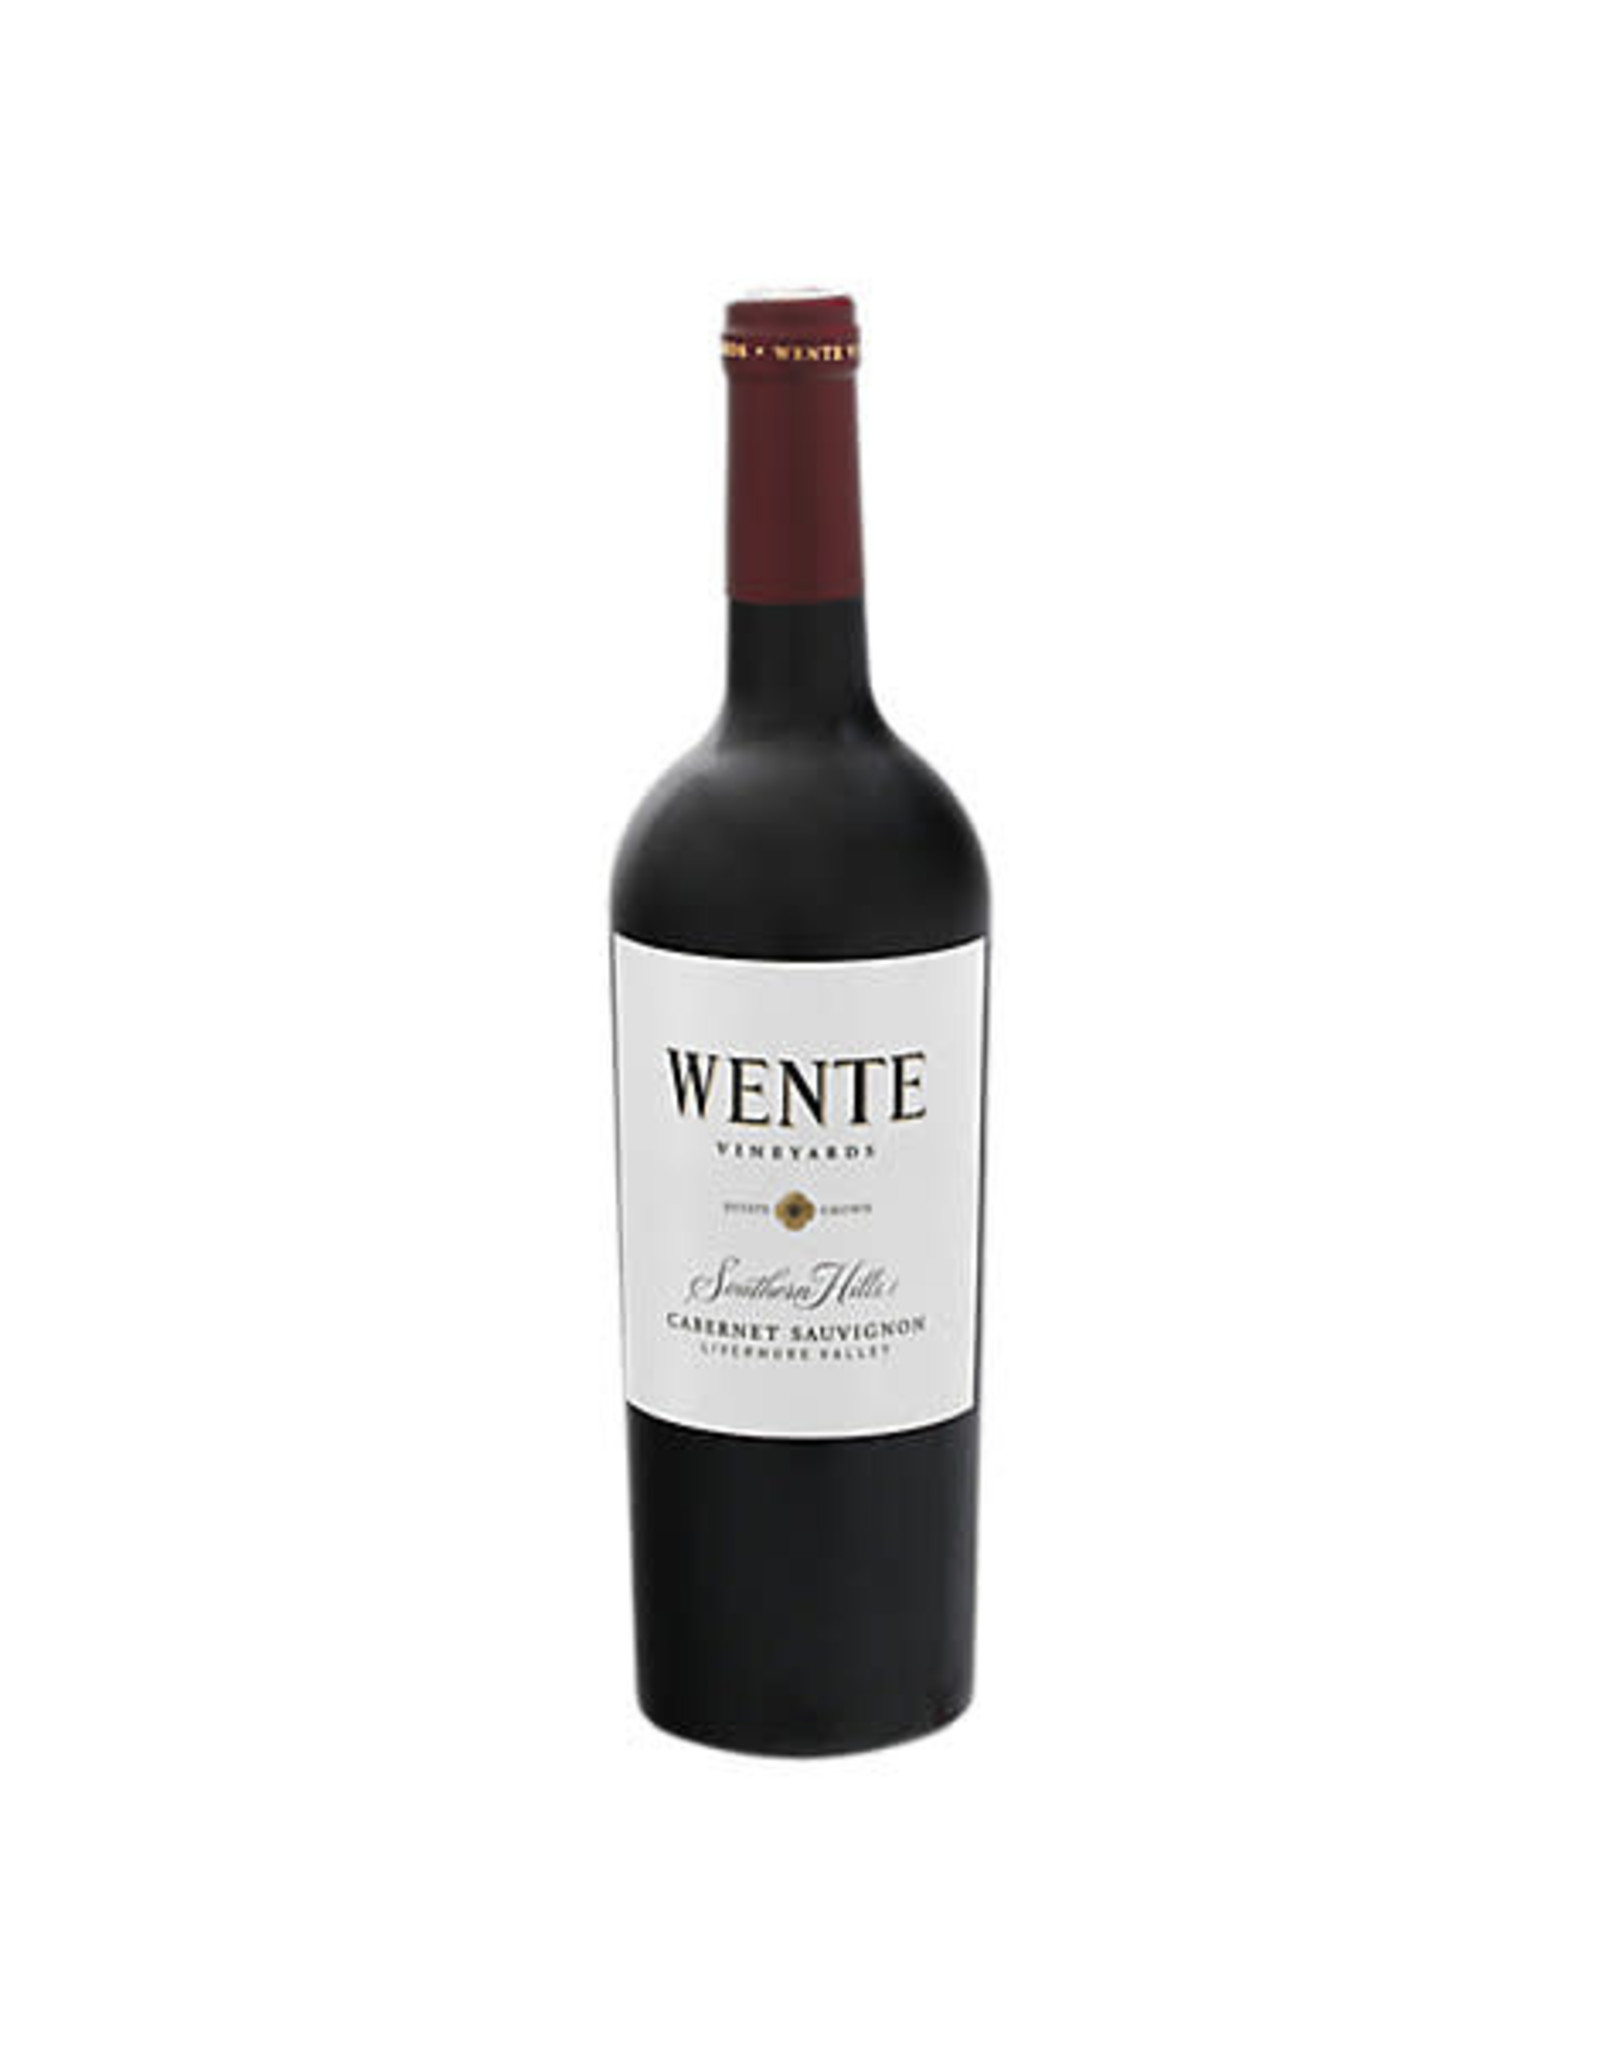 WENTE SOUTHERN HILLS CAB 2016-17